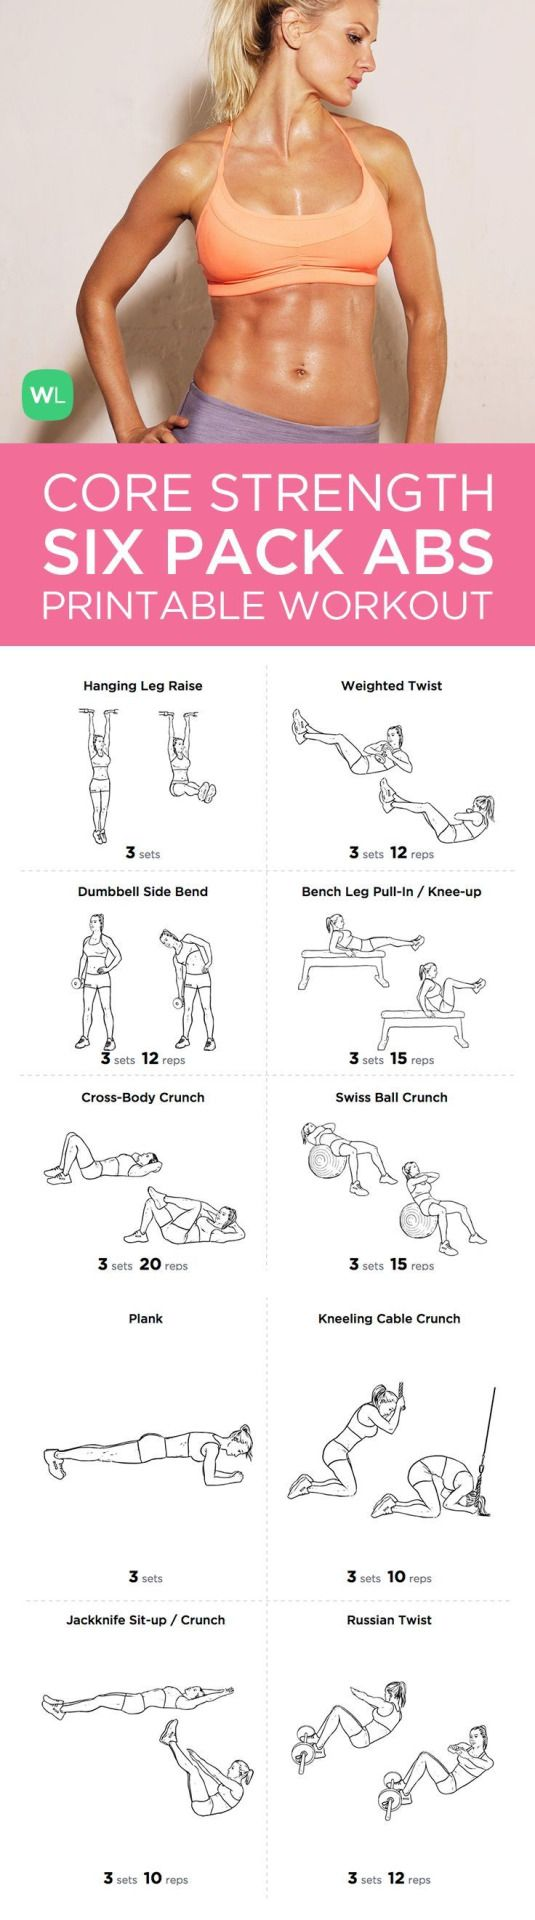 Everyday Uses for Coconut Oil  Exercise  Pinterest  Flat